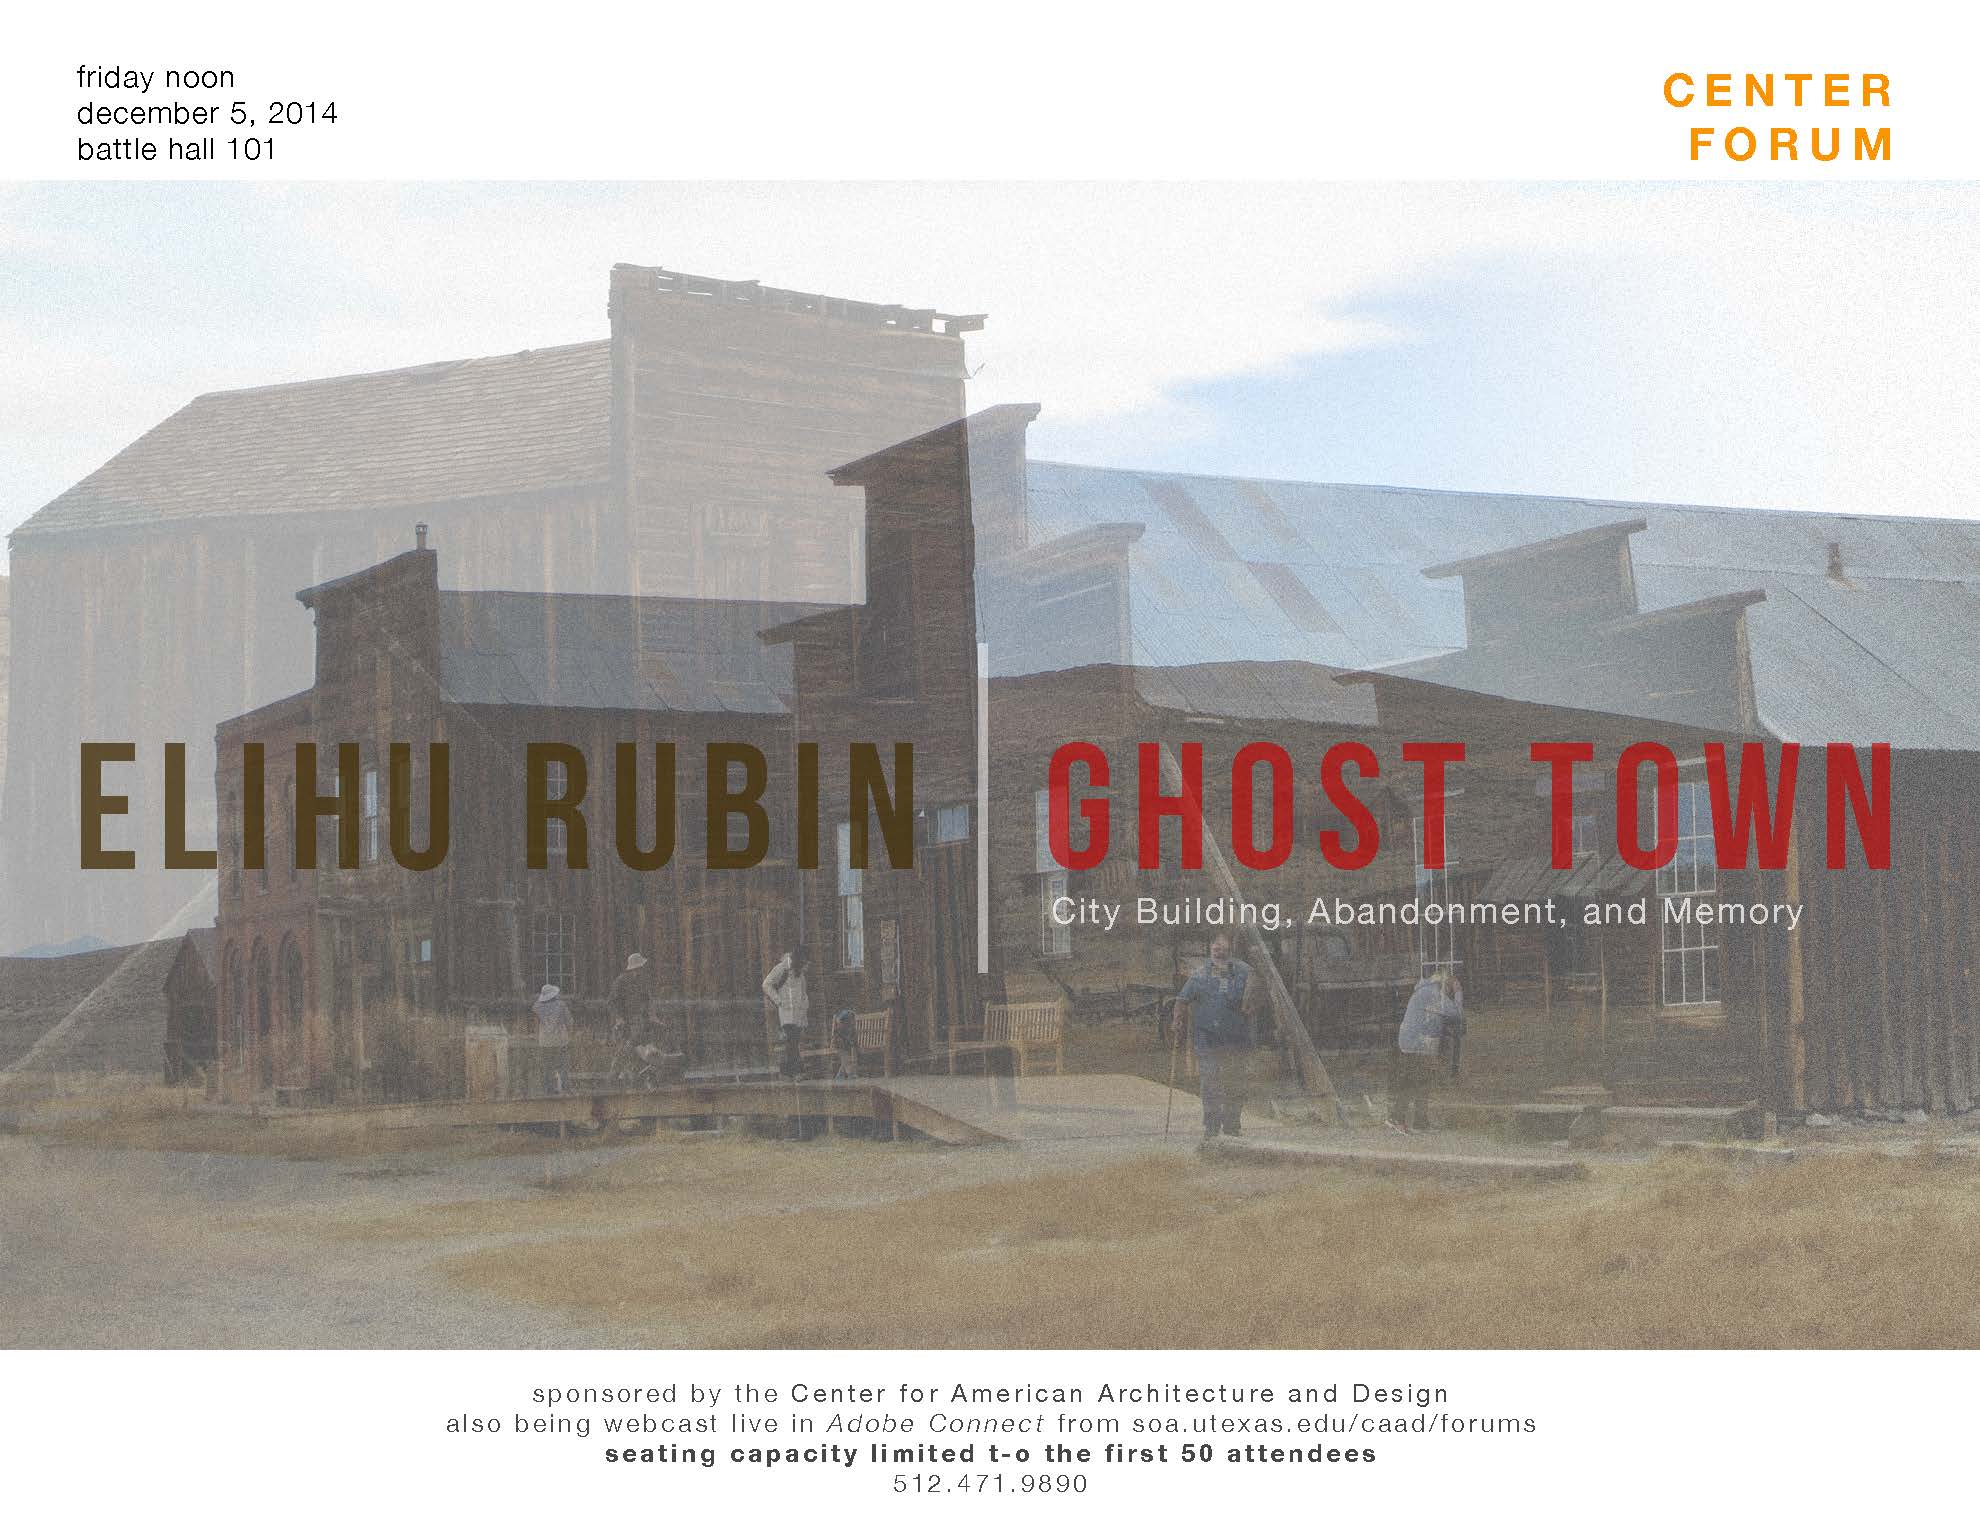 ELIHU RUBIN HOSTS FRIDAY LUNCH FORUM: GHOST TOWN